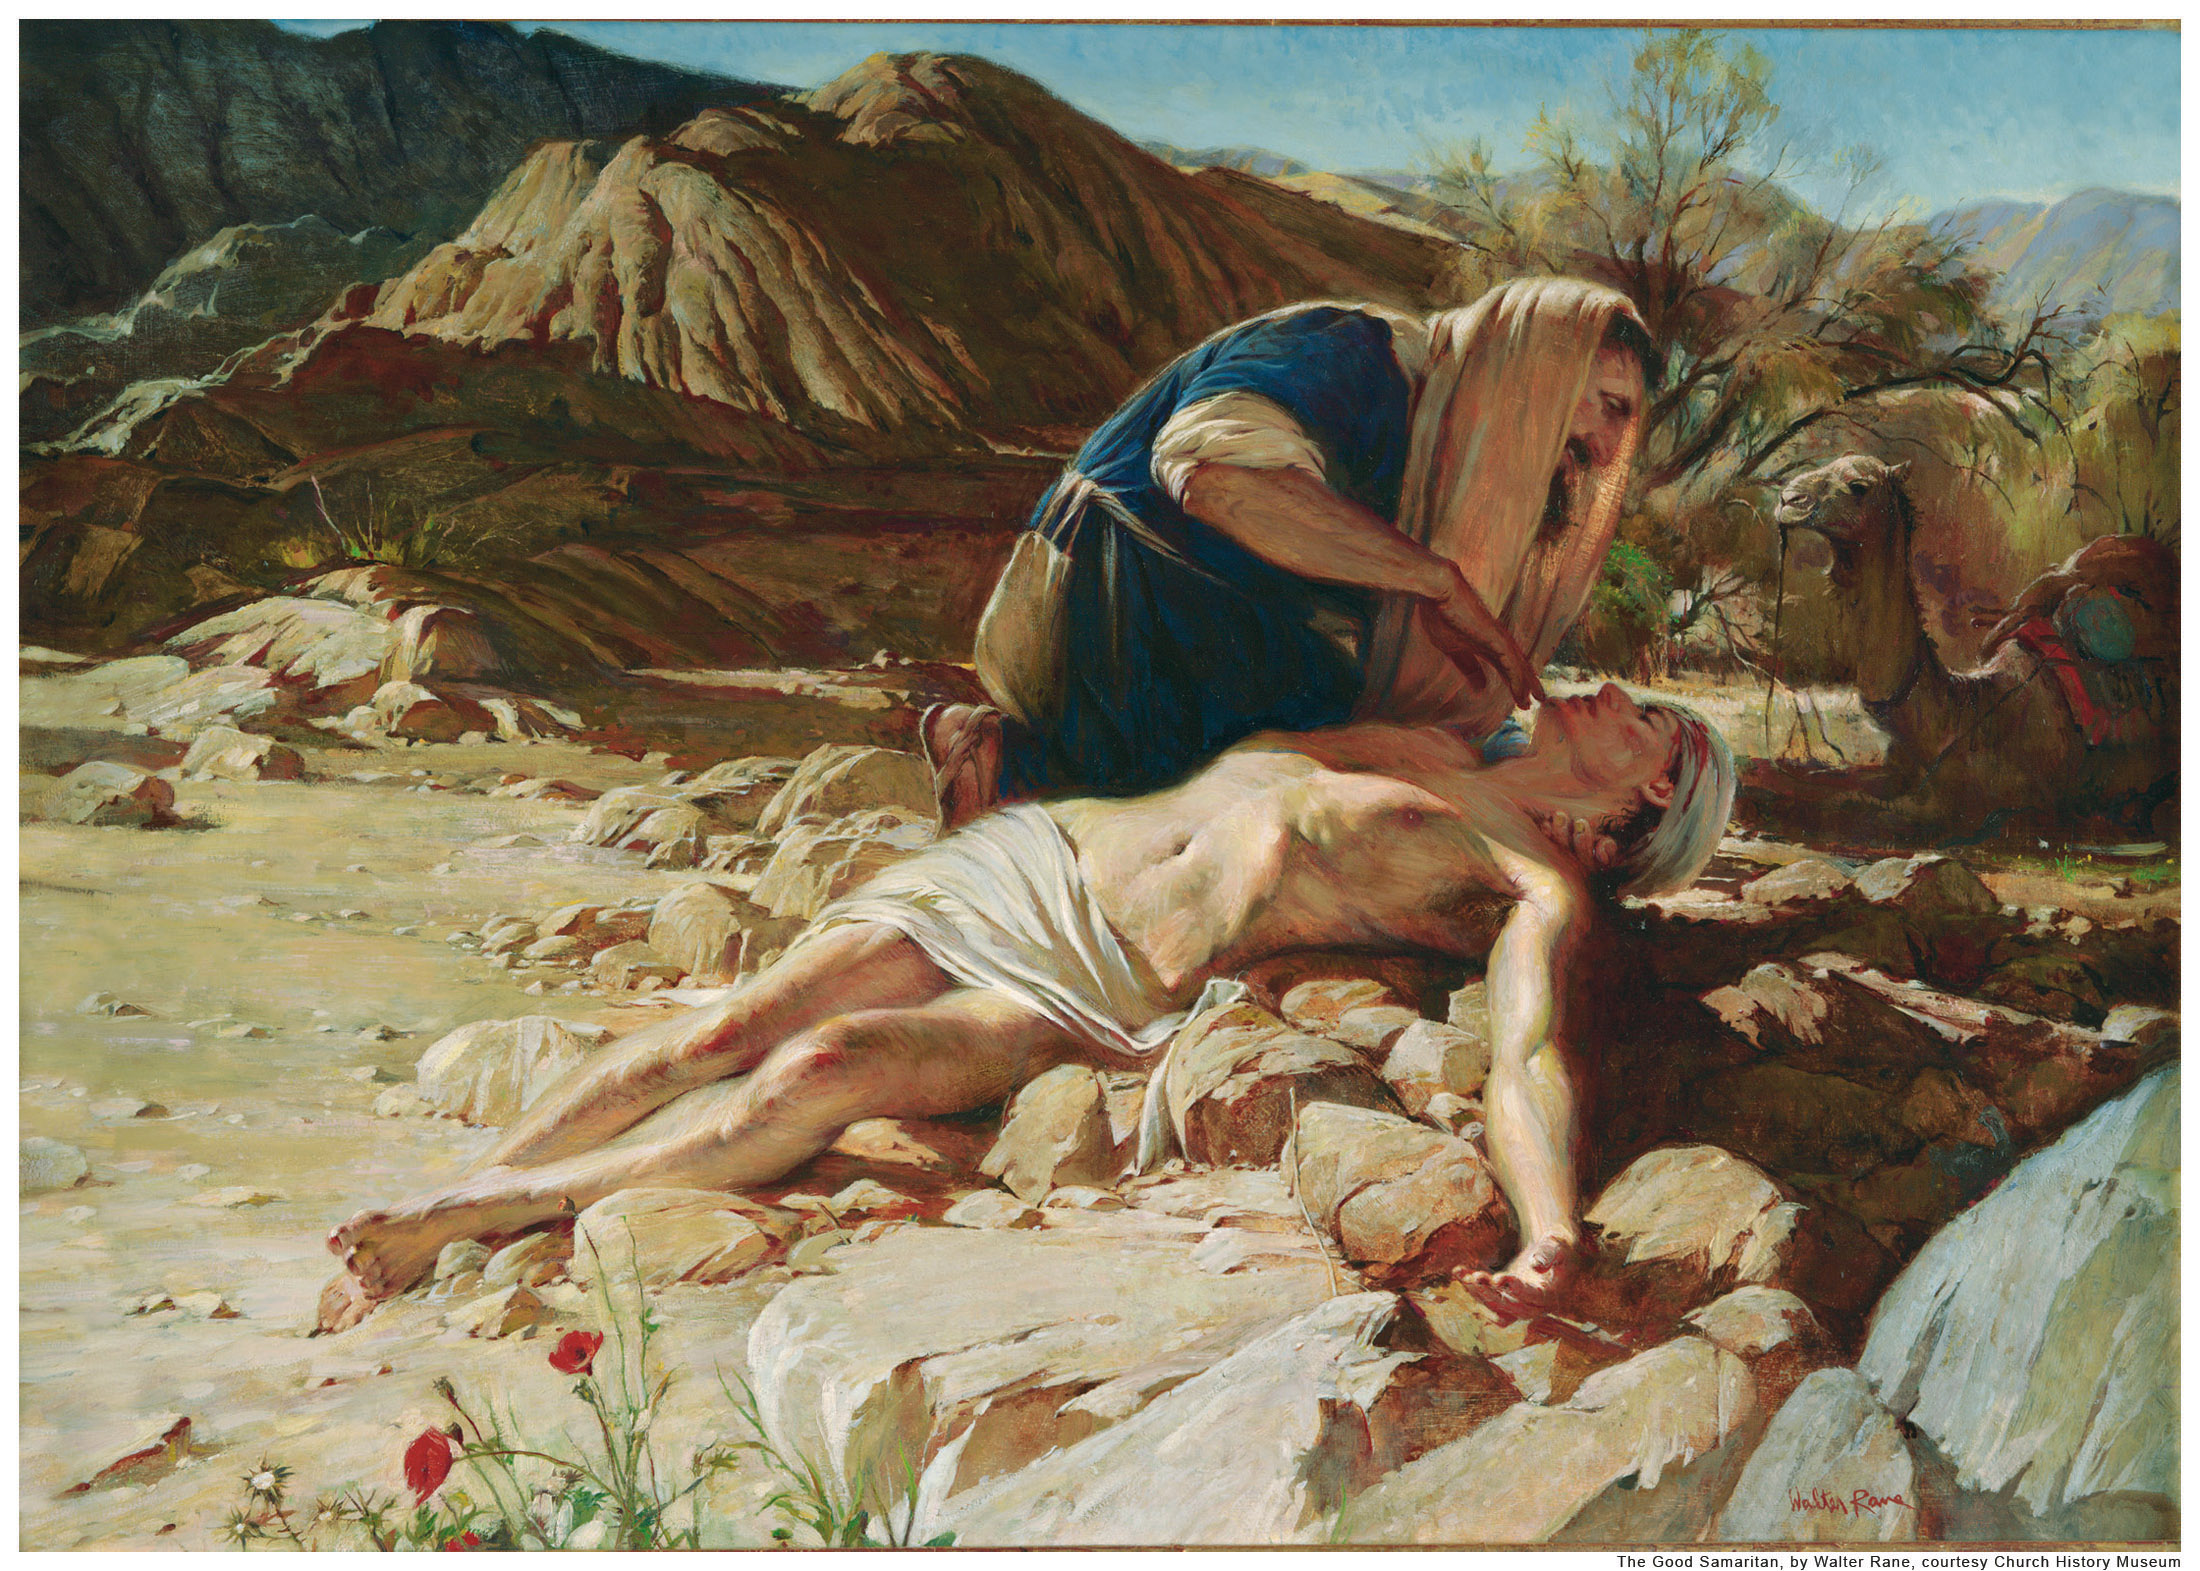 8 powerful lists from the compelling story of the good samaritan